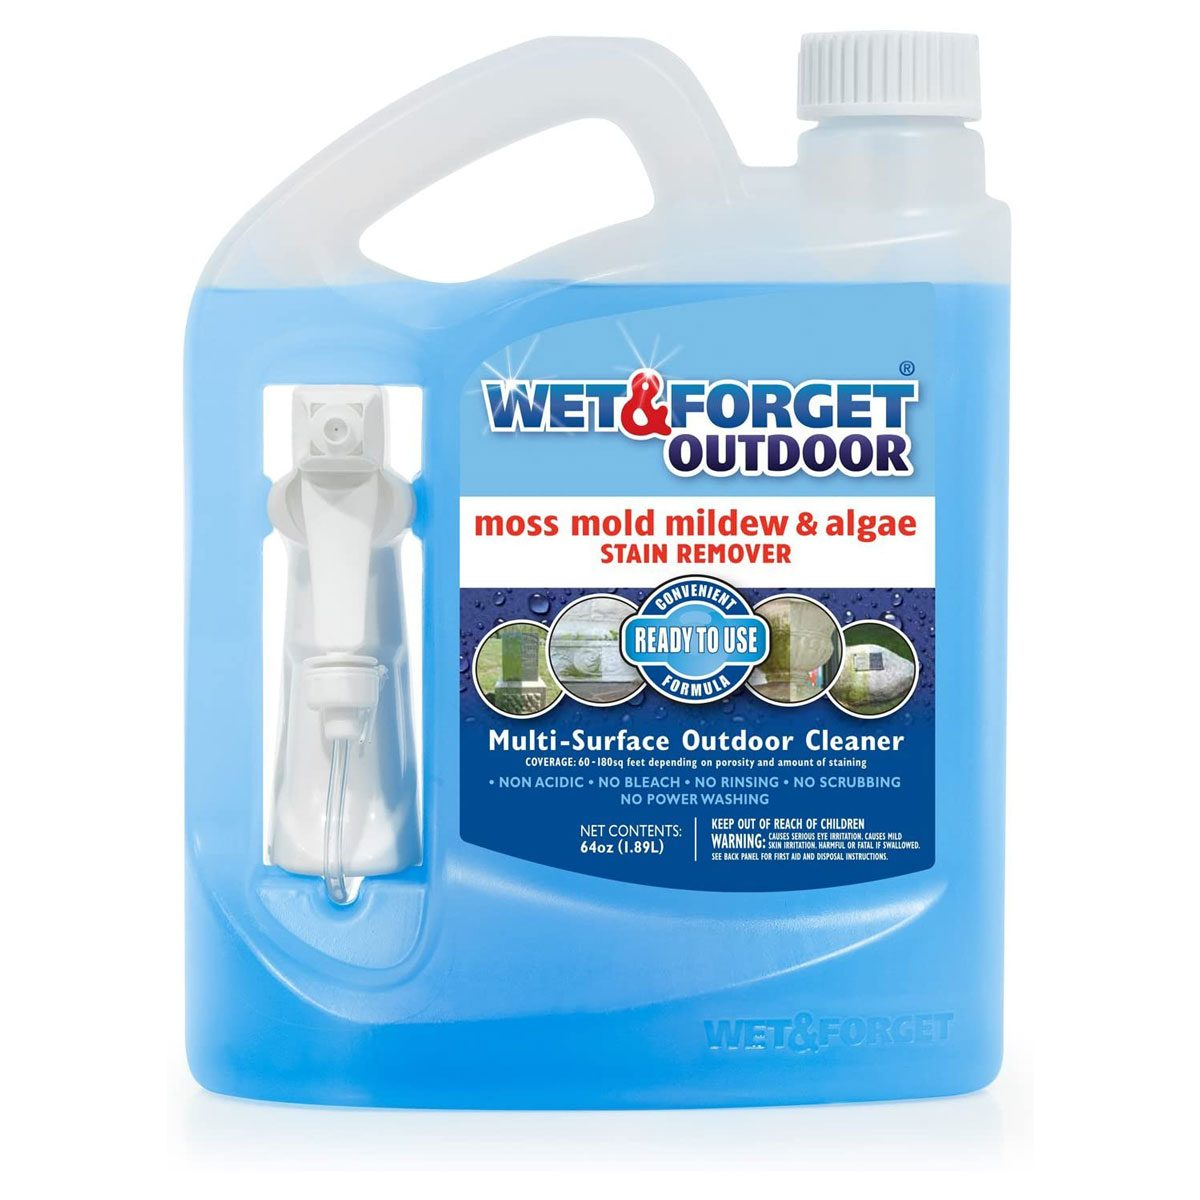 Outdoor mold remover